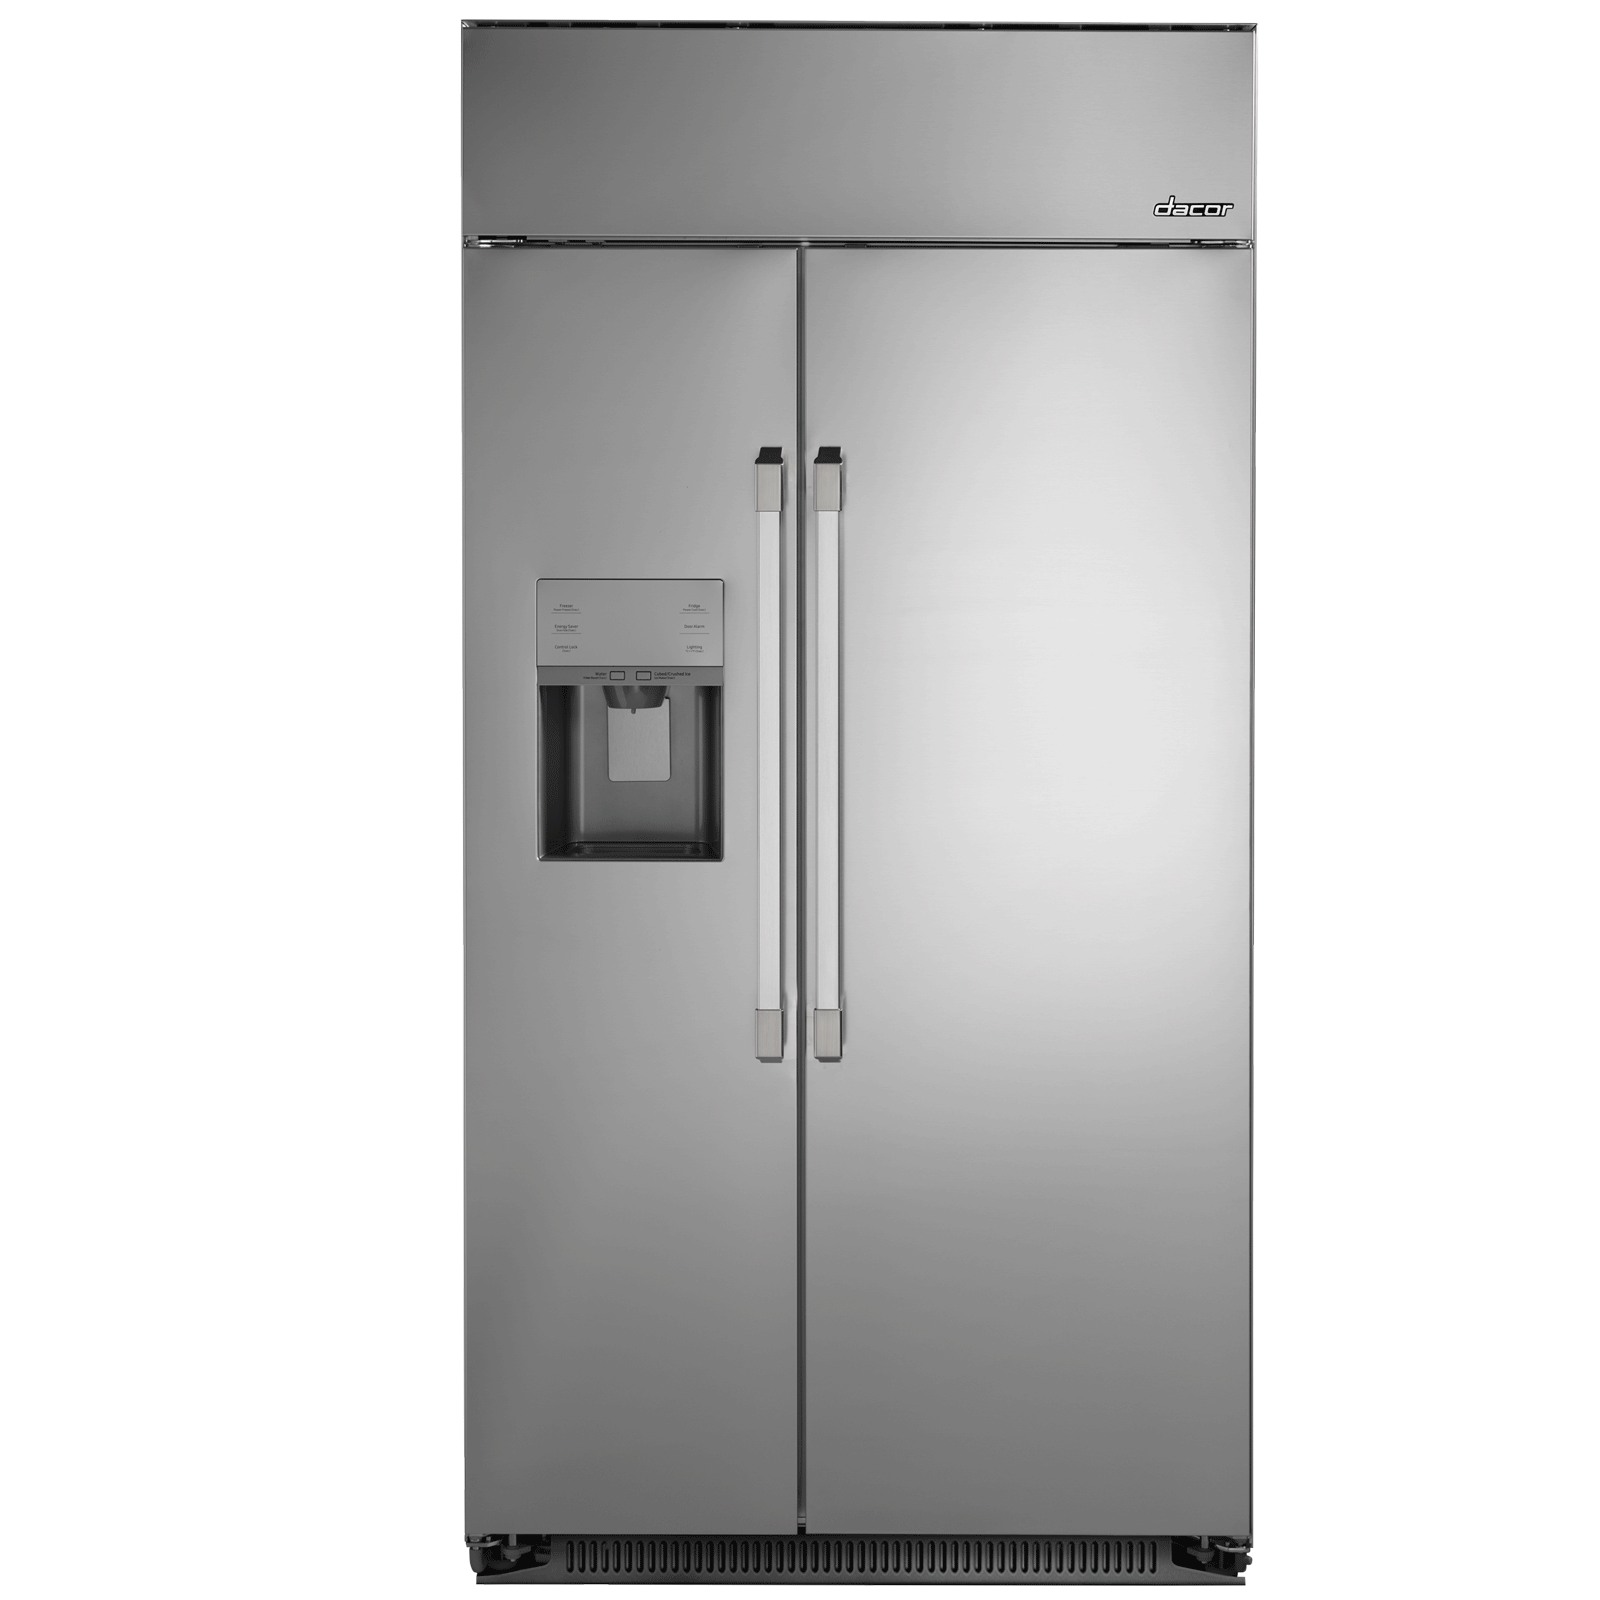 "Dacor Heritage 42"" Built-In Side-by-SideRefrigerator, in Stainless Steel with Pro Style Handle"